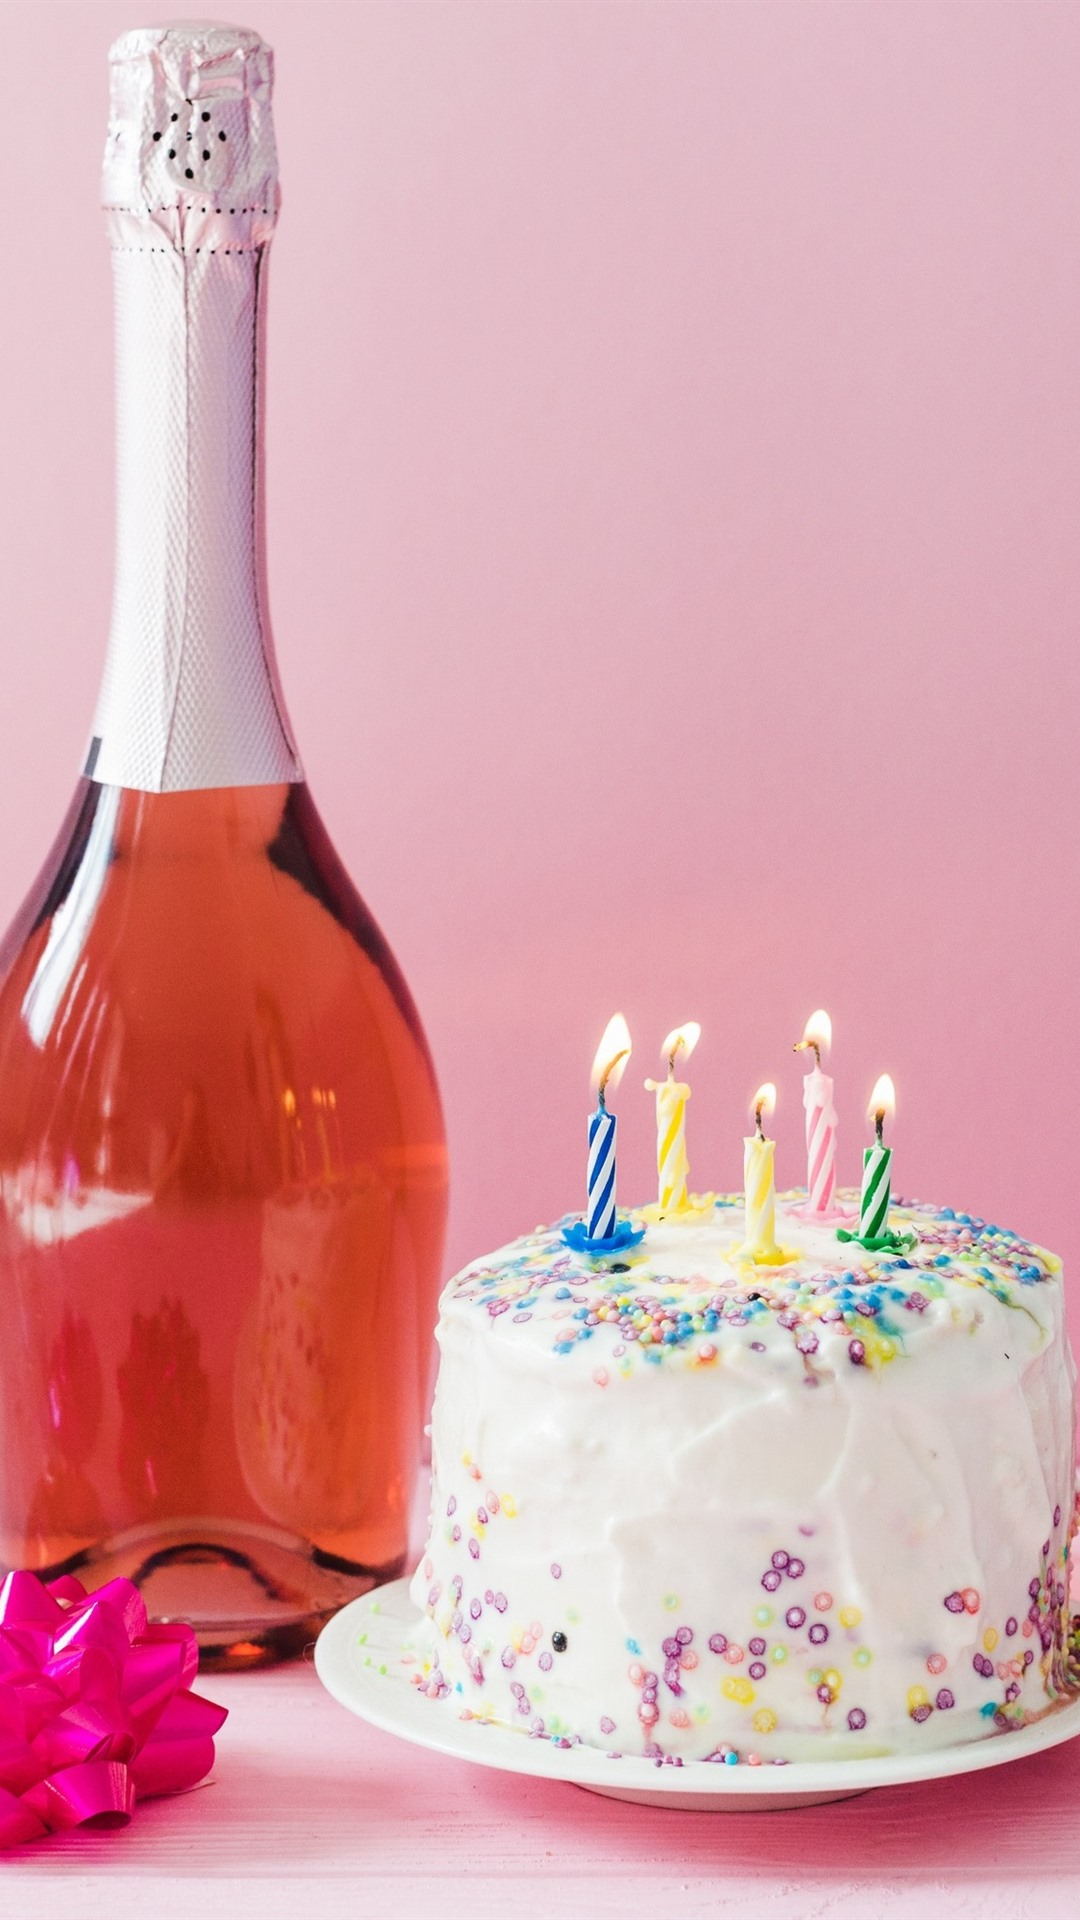 Birthday Cake Candles Fire Wine Gift 1080x1920 IPhone 8 7 6 6S